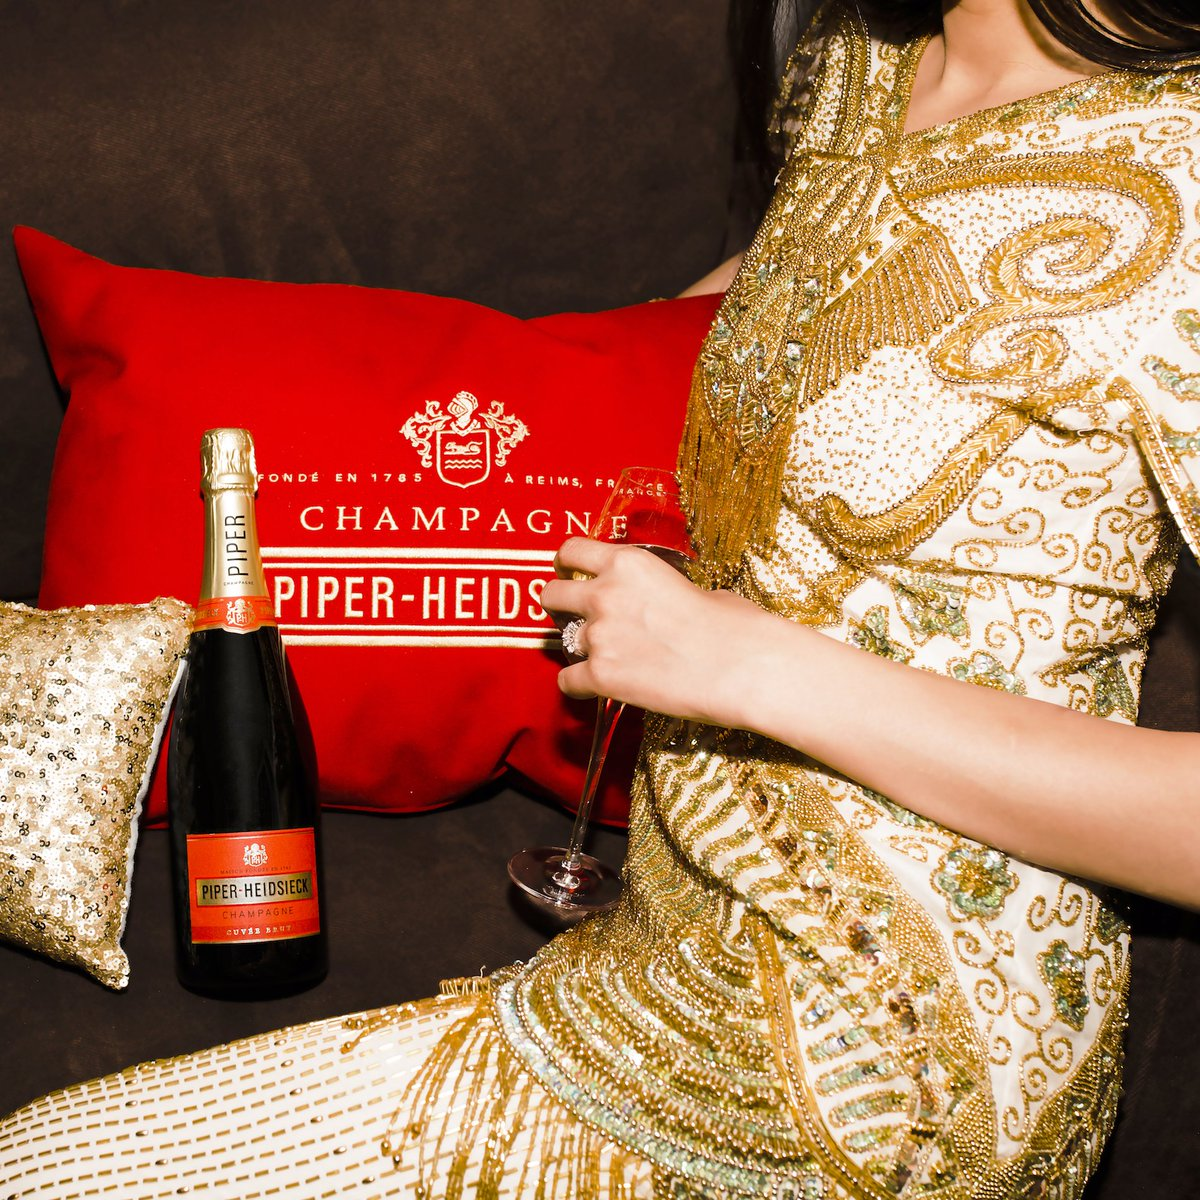 Piper-Heidsieck Celebrates 5 Years at the Oscars